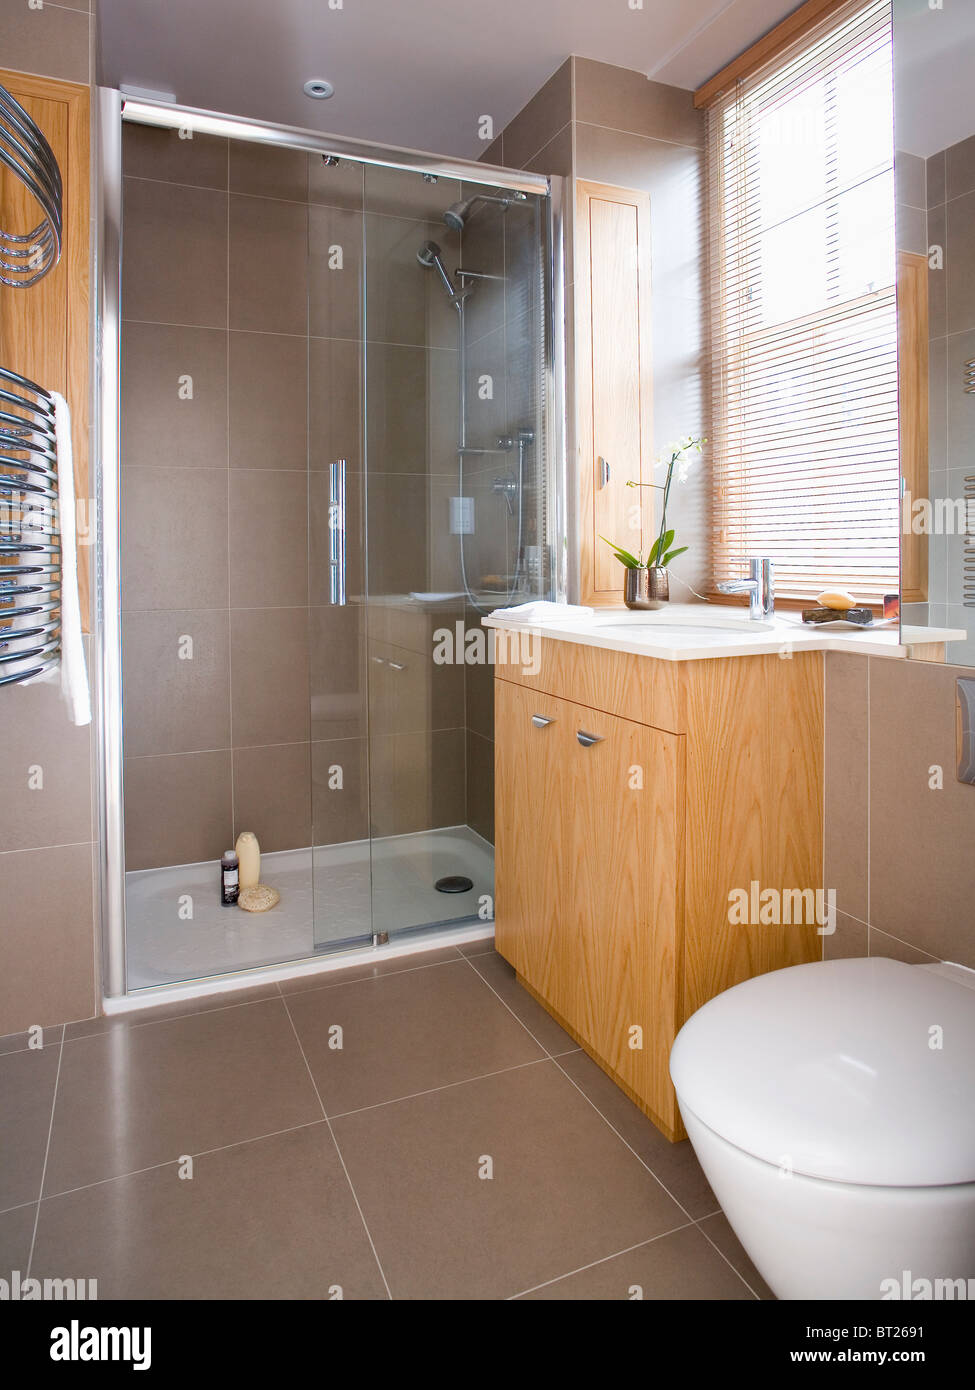 Glass Doors On Large Walk In Shower In Modern Bathroom With